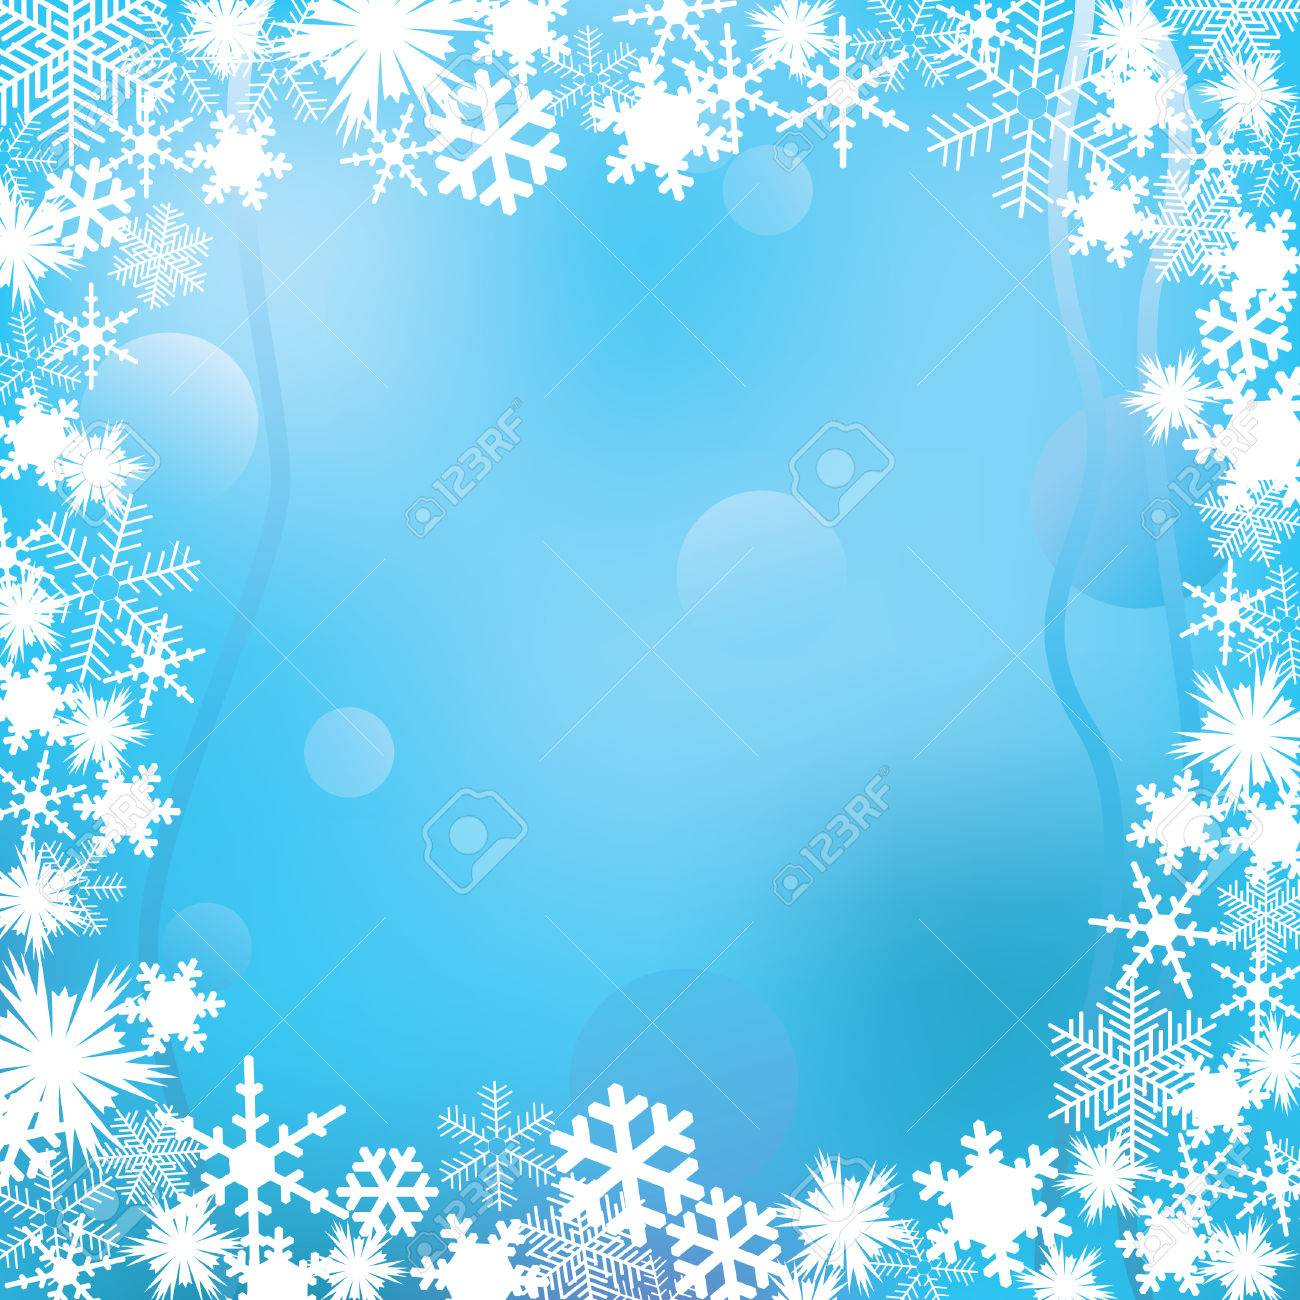 frame of white snowflakes on a winter background stock vector 8213094